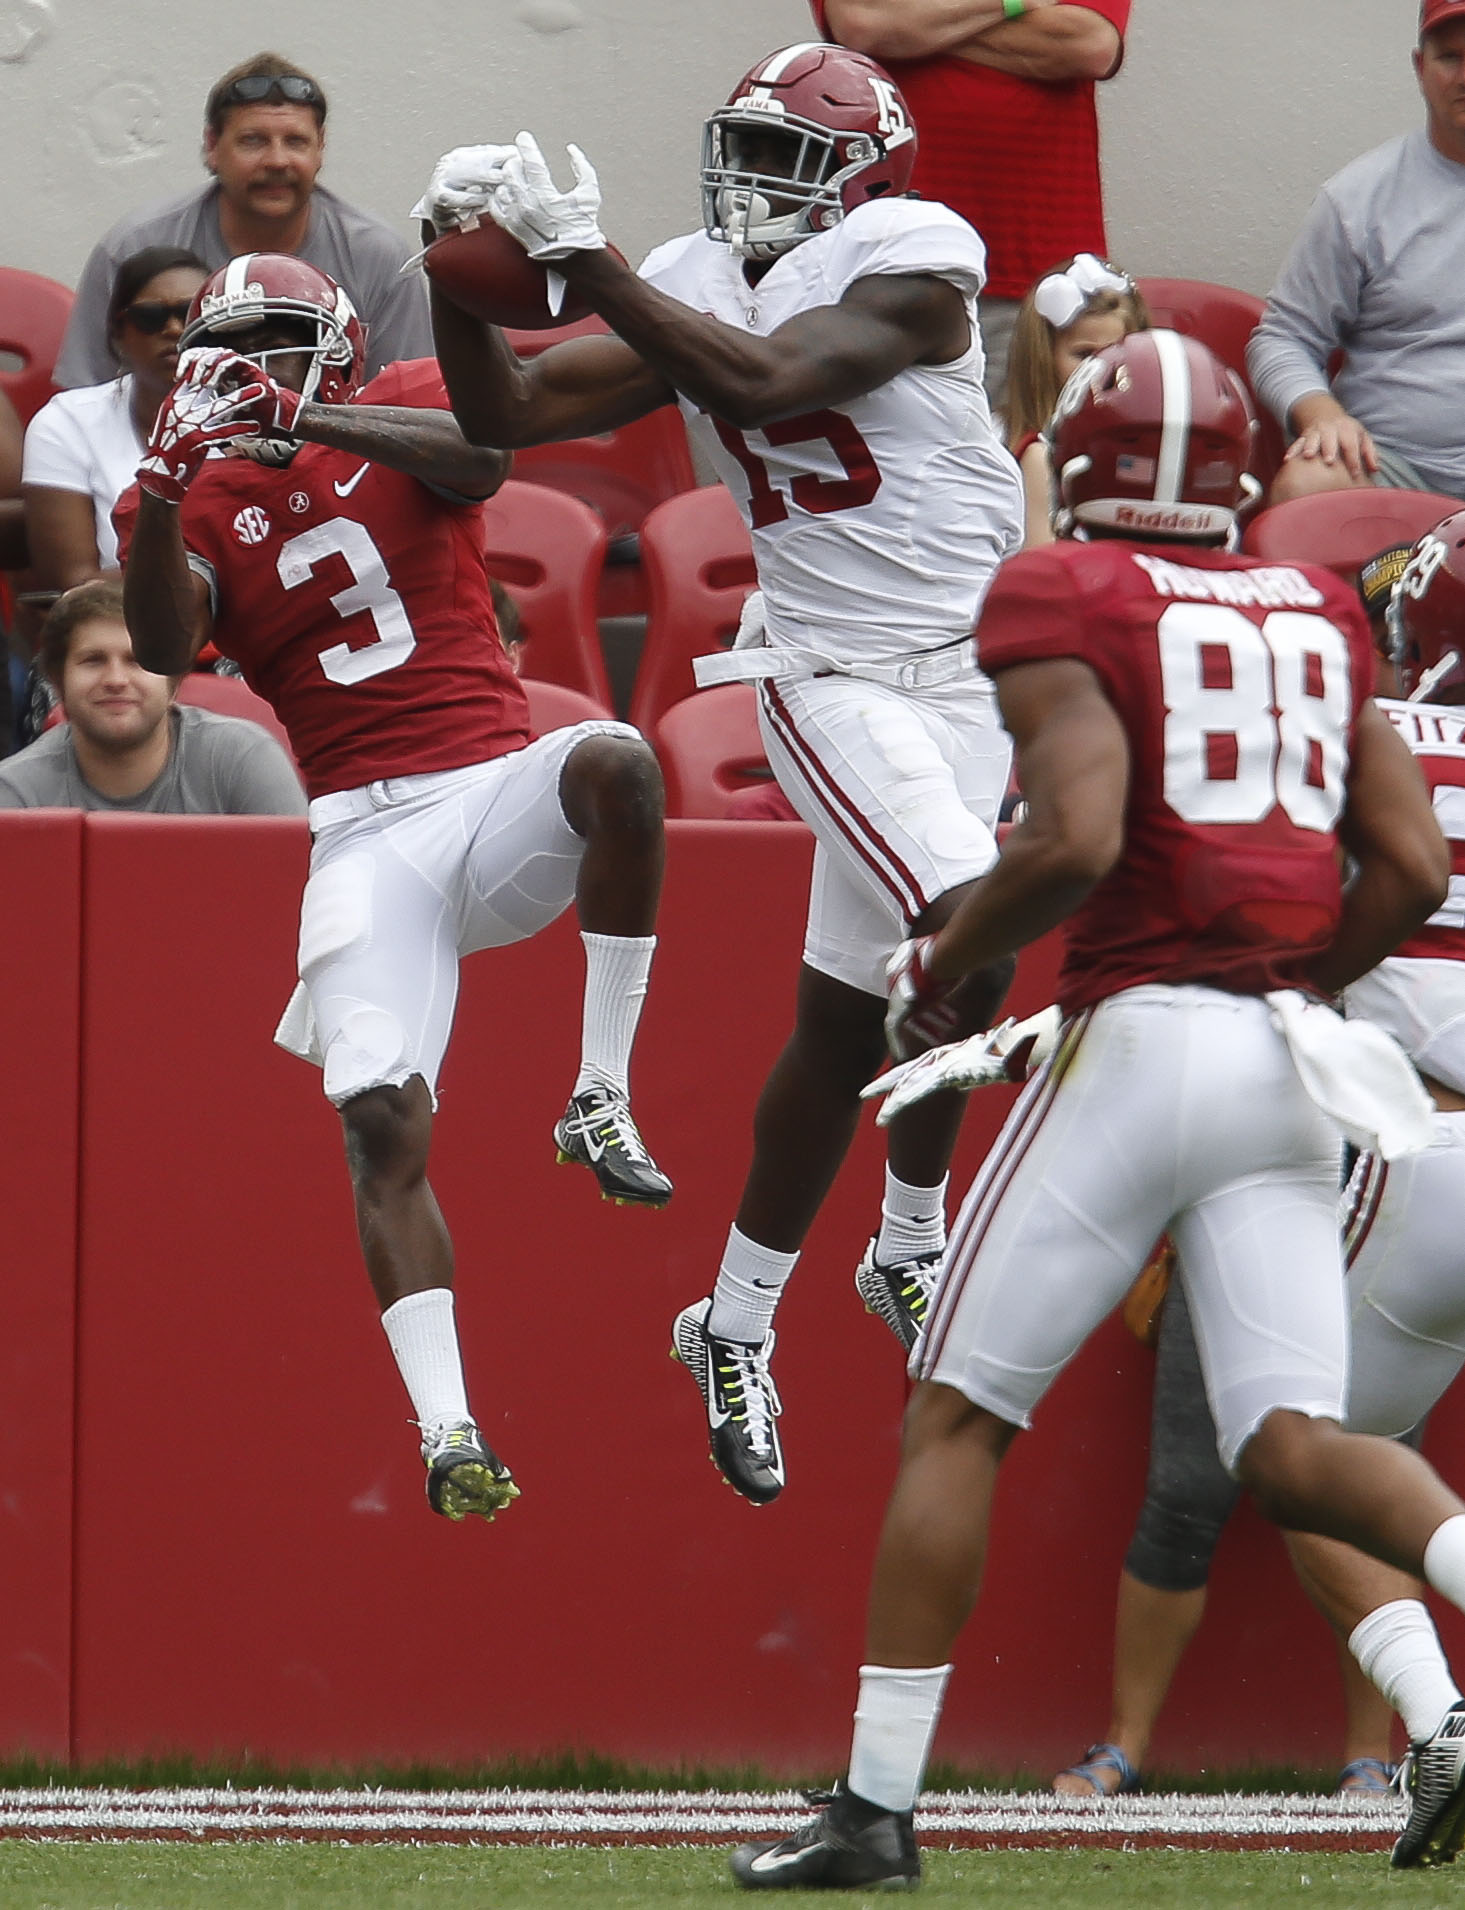 Alabama defensive back Ronnie Harrison picks off a pass in the end zone intended for wide receiver Calvin Ridley during an NCAA college spring football game, Saturday, April 16, 2016 at Bryant-Denny Stadium in Tuscaloosa, Ala. (Gary Cosby Jr./The Tuscaloo